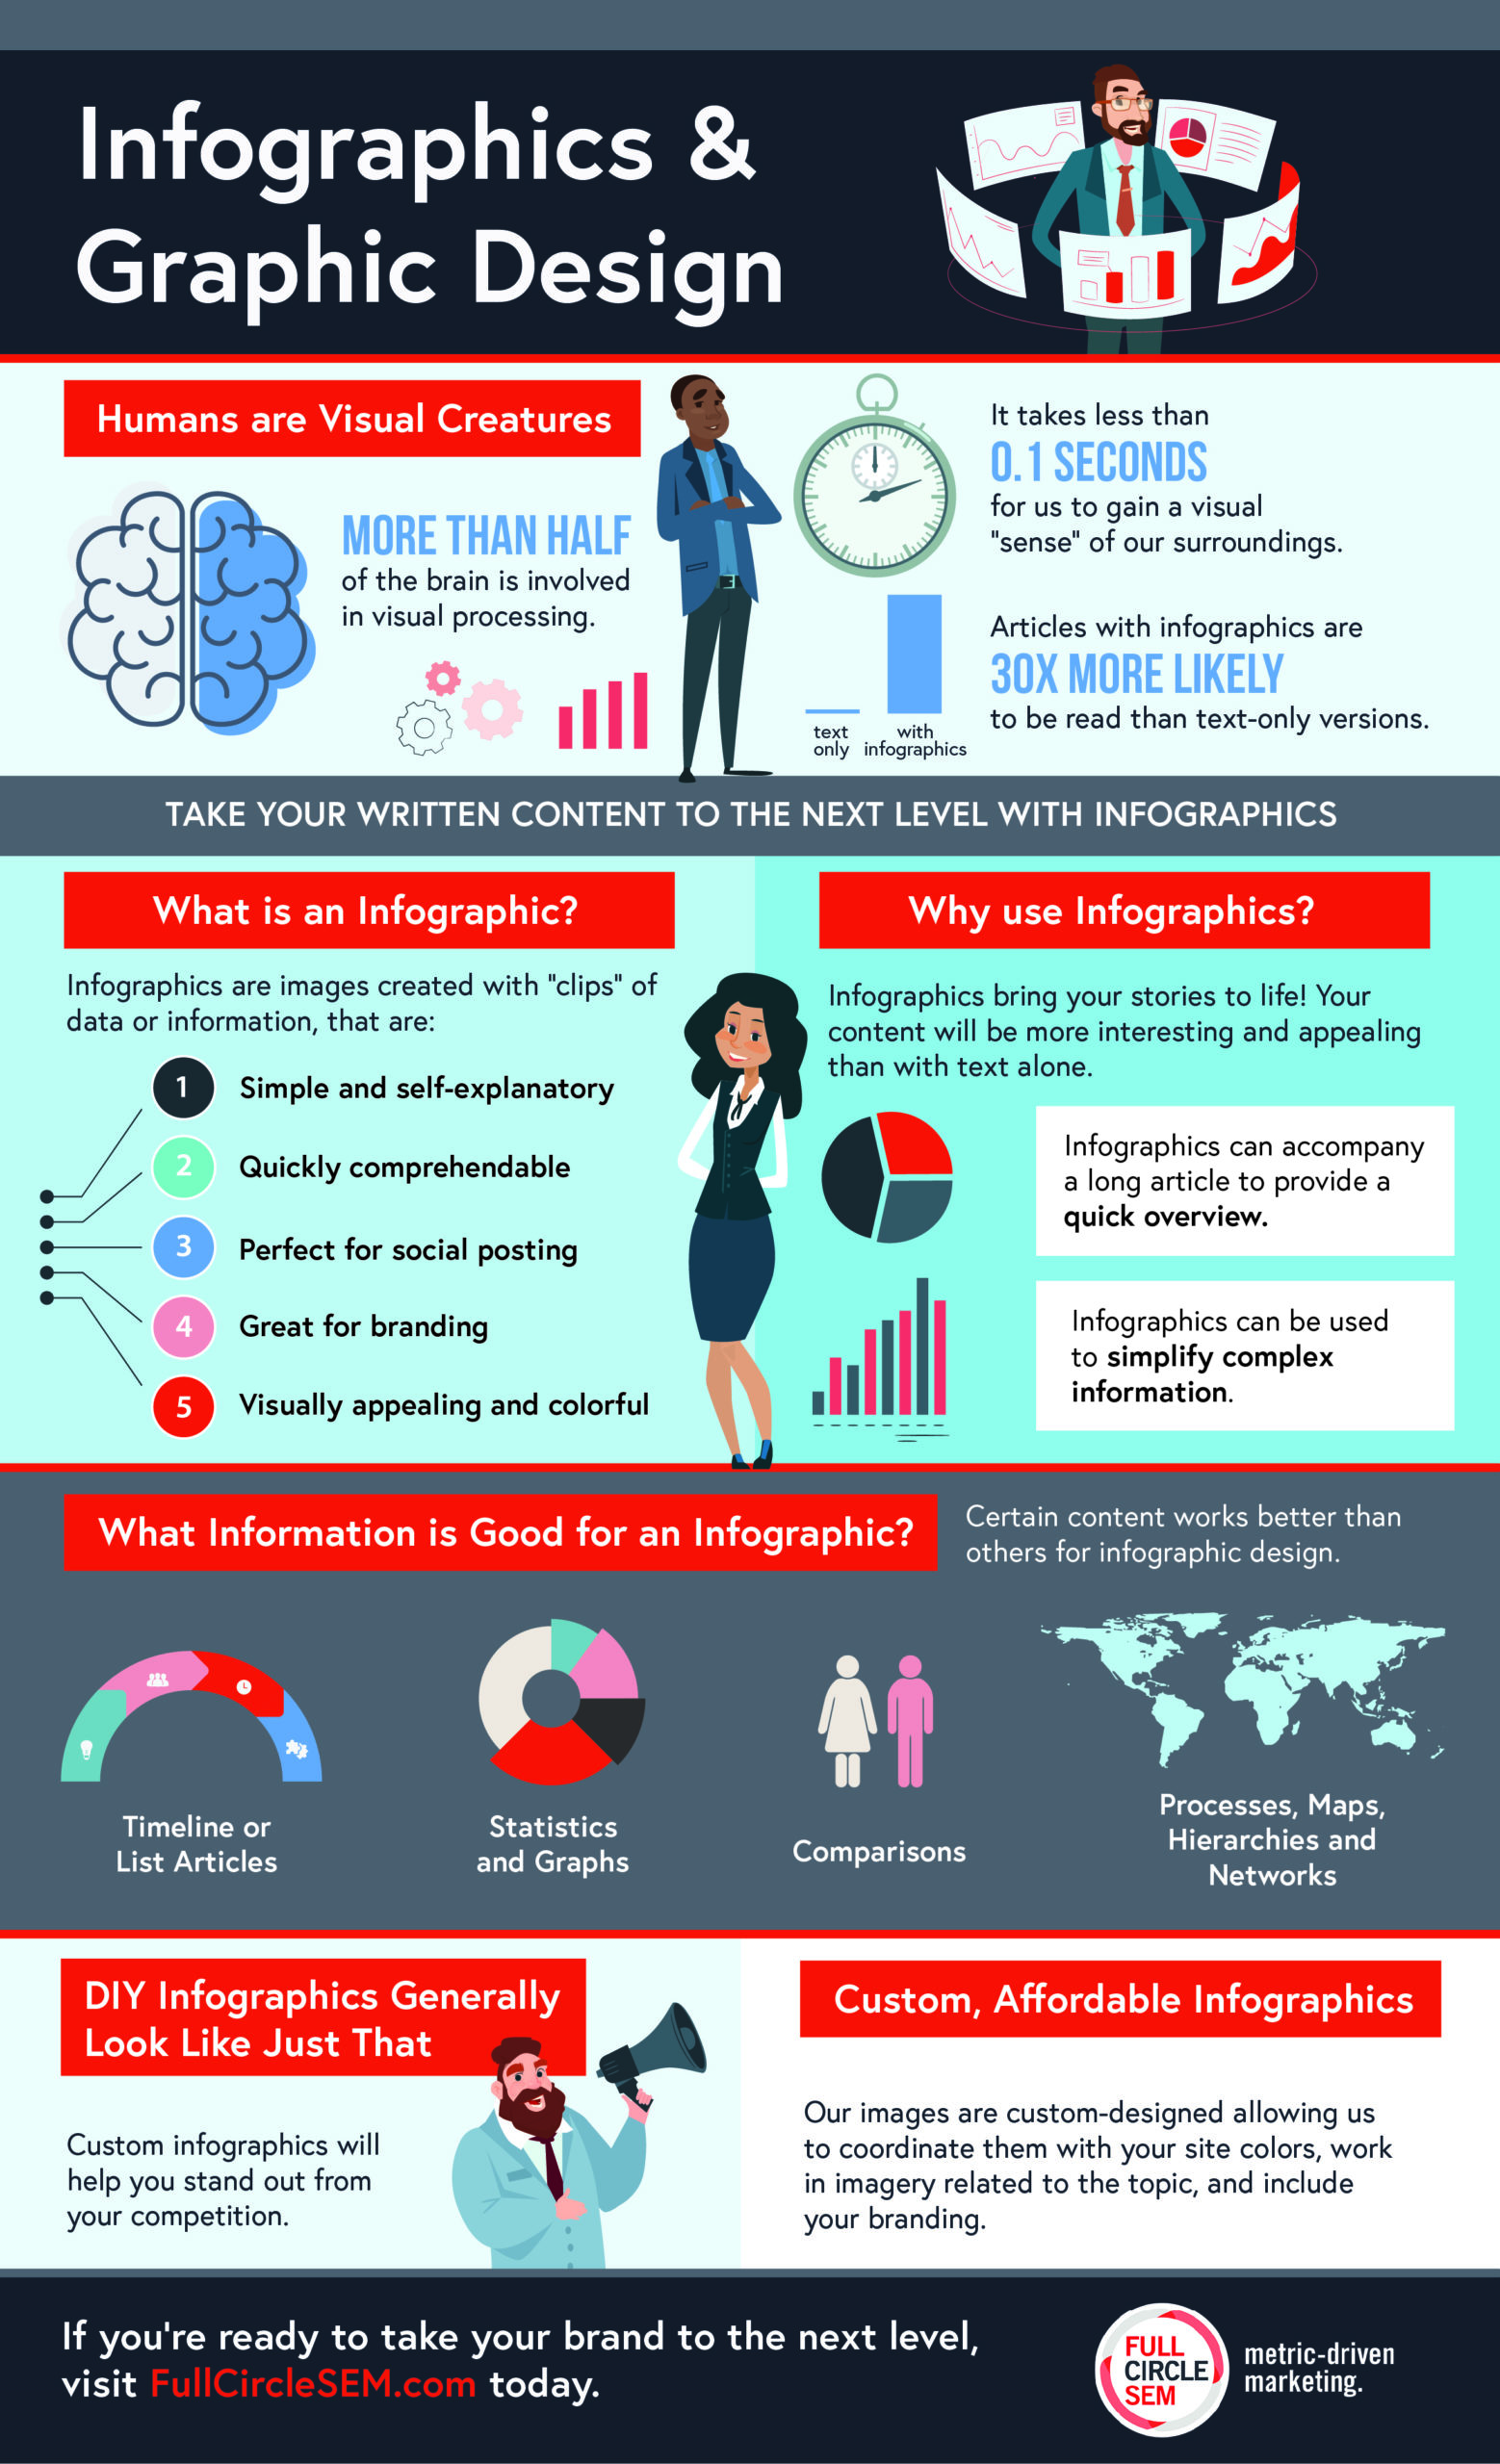 infographics and graphic design